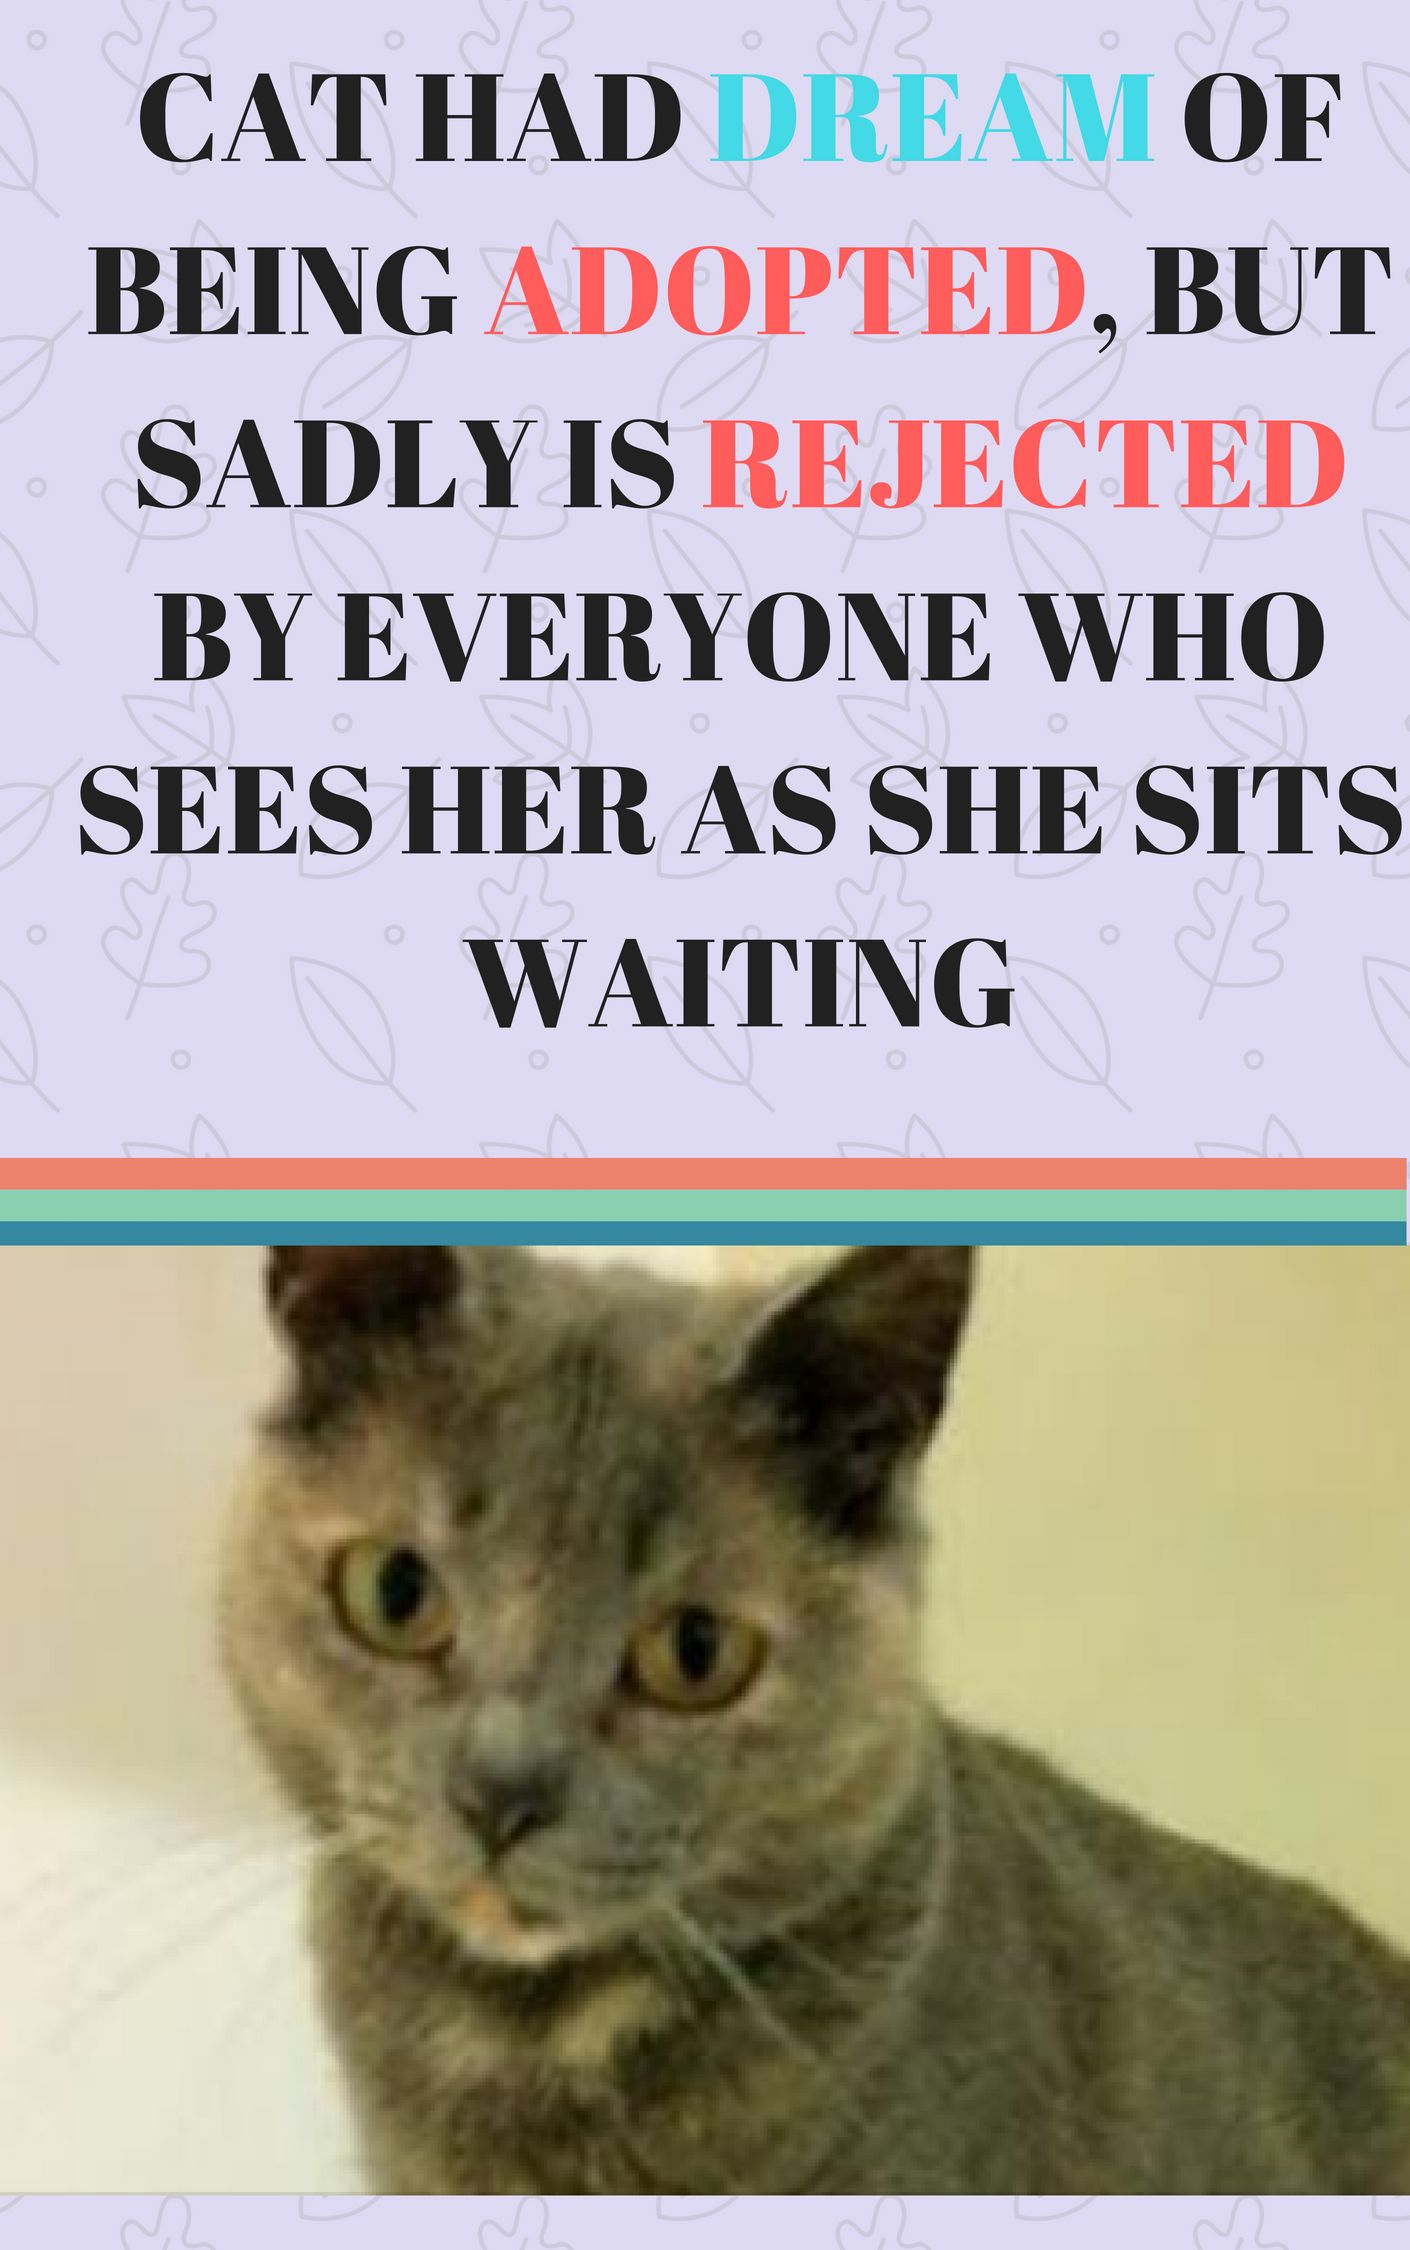 Heartwarming Rescue Story Follow Us For More Awesome Cats Kittens Cute Cats Pets And Animals Rescue Story Animal Animal Rescue Stories Cute Cats Cats